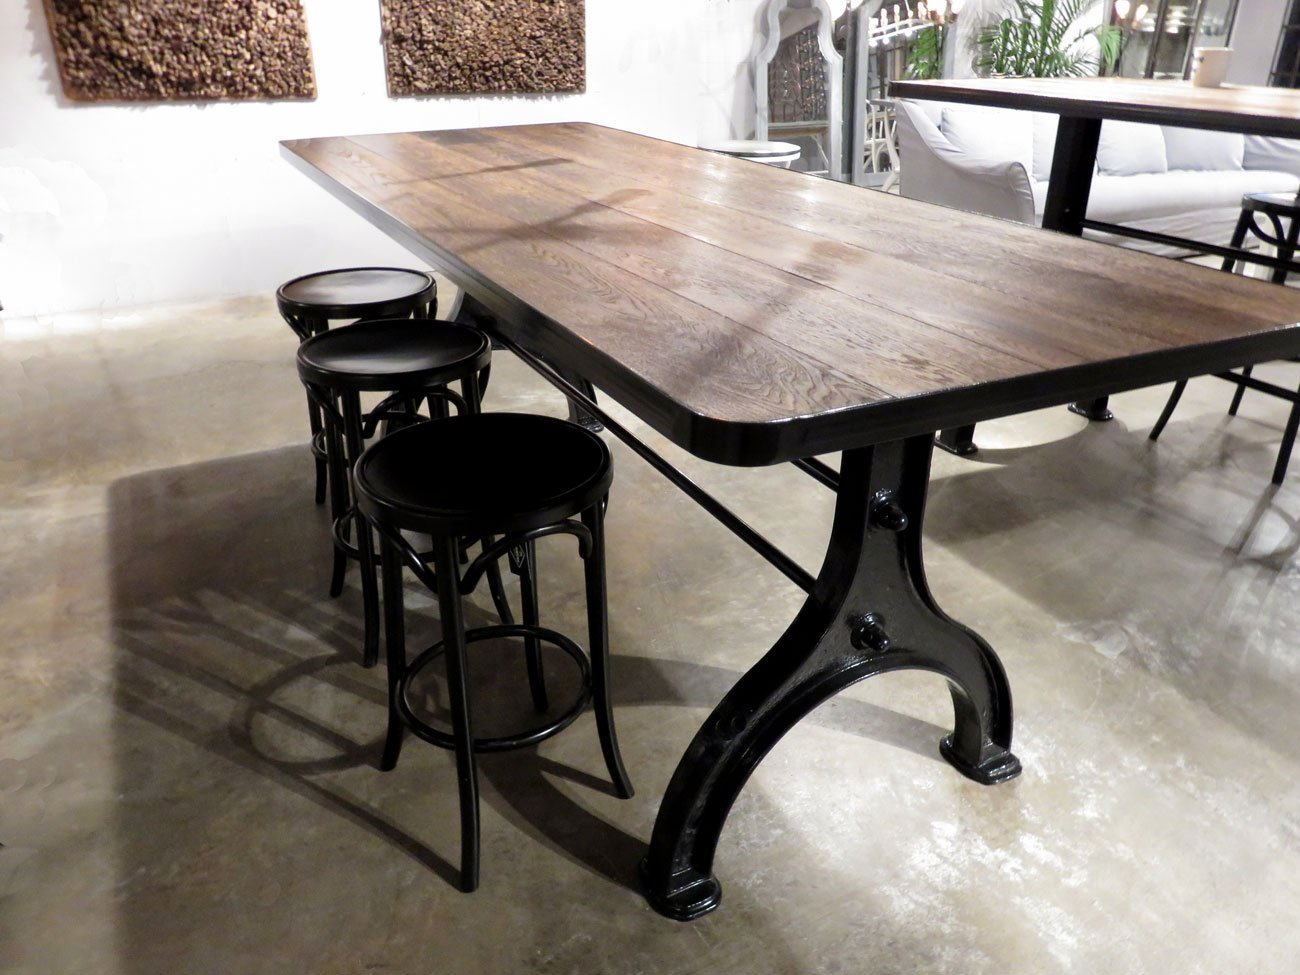 Industrial Iron Base Dining Table : counter 1 from www.hudsongoodsblog.com size 1300 x 975 jpeg 203kB